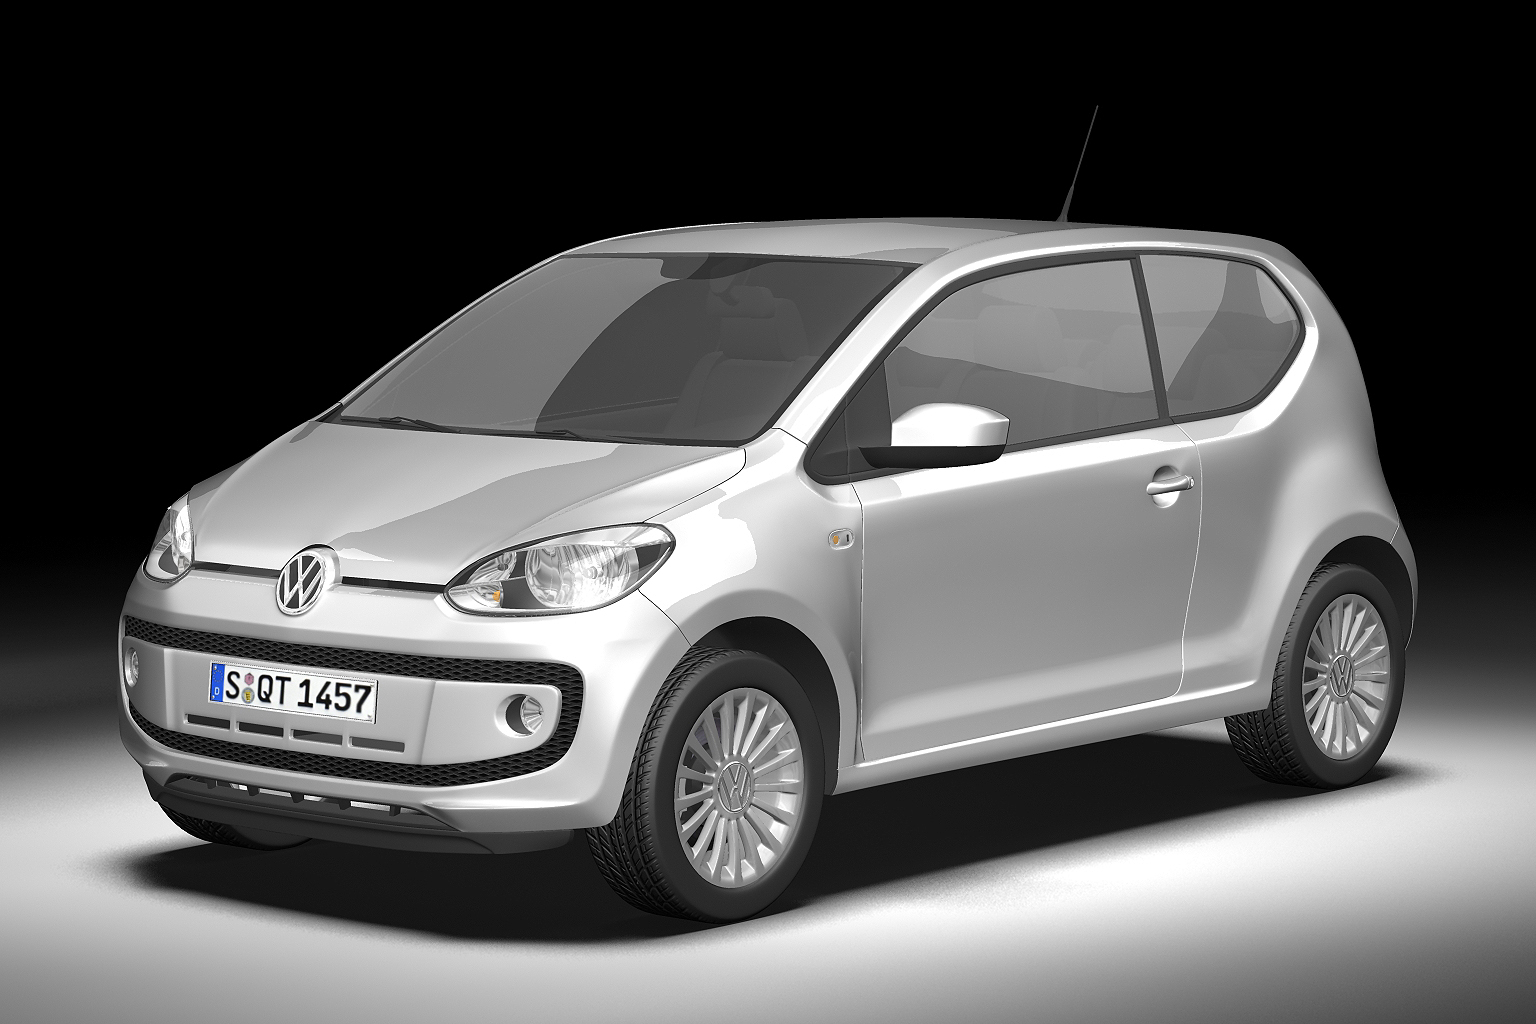 2013 volkswagen up 3d model 3ds max fbx c4d lwo hrc xsi obj 136204